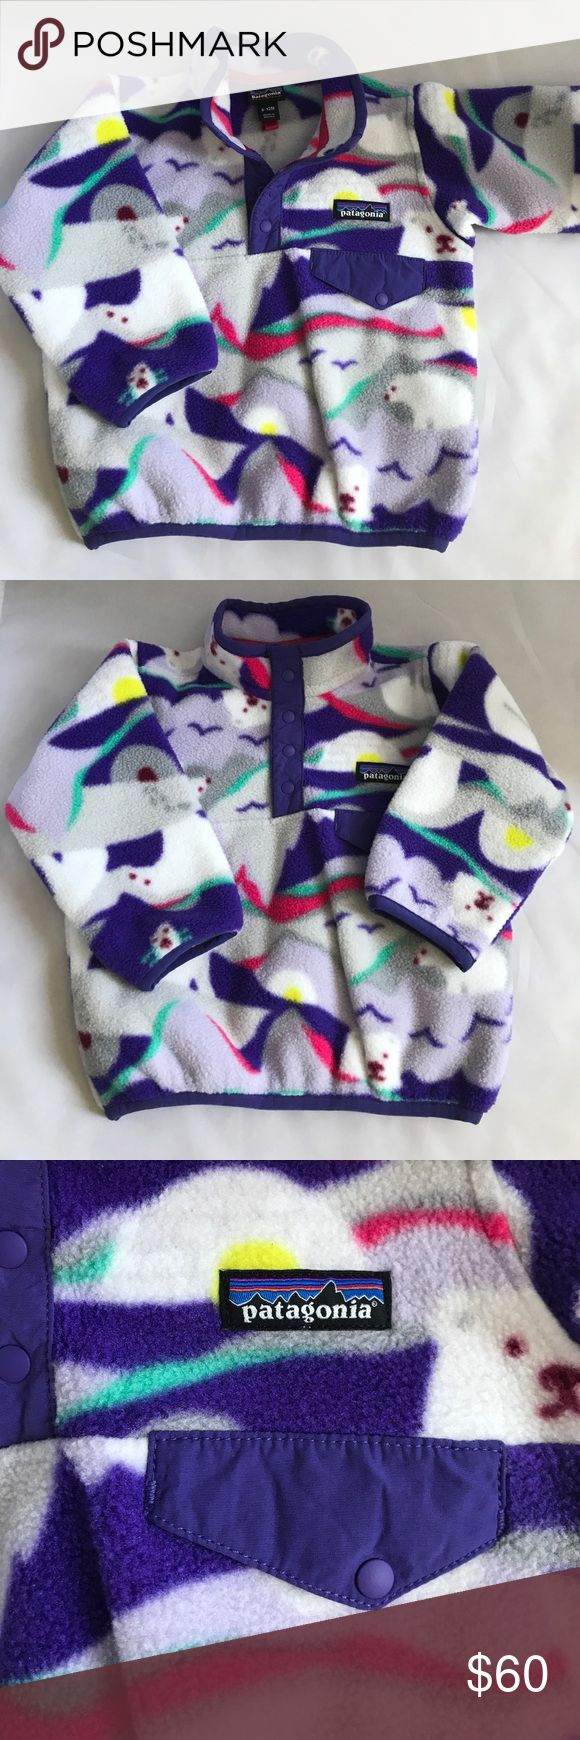 Patagonia fleece 6-12 M synchilla sweater purple Baby girl synchilla pullover fleece jacket size 6-12 months. From Patagonia. In excellent condition. Long sleeves. Snap buttons in the neck. Polar bear print. Purple, white, pink, yellow and green. Patagonia Shirts & Tops Sweaters